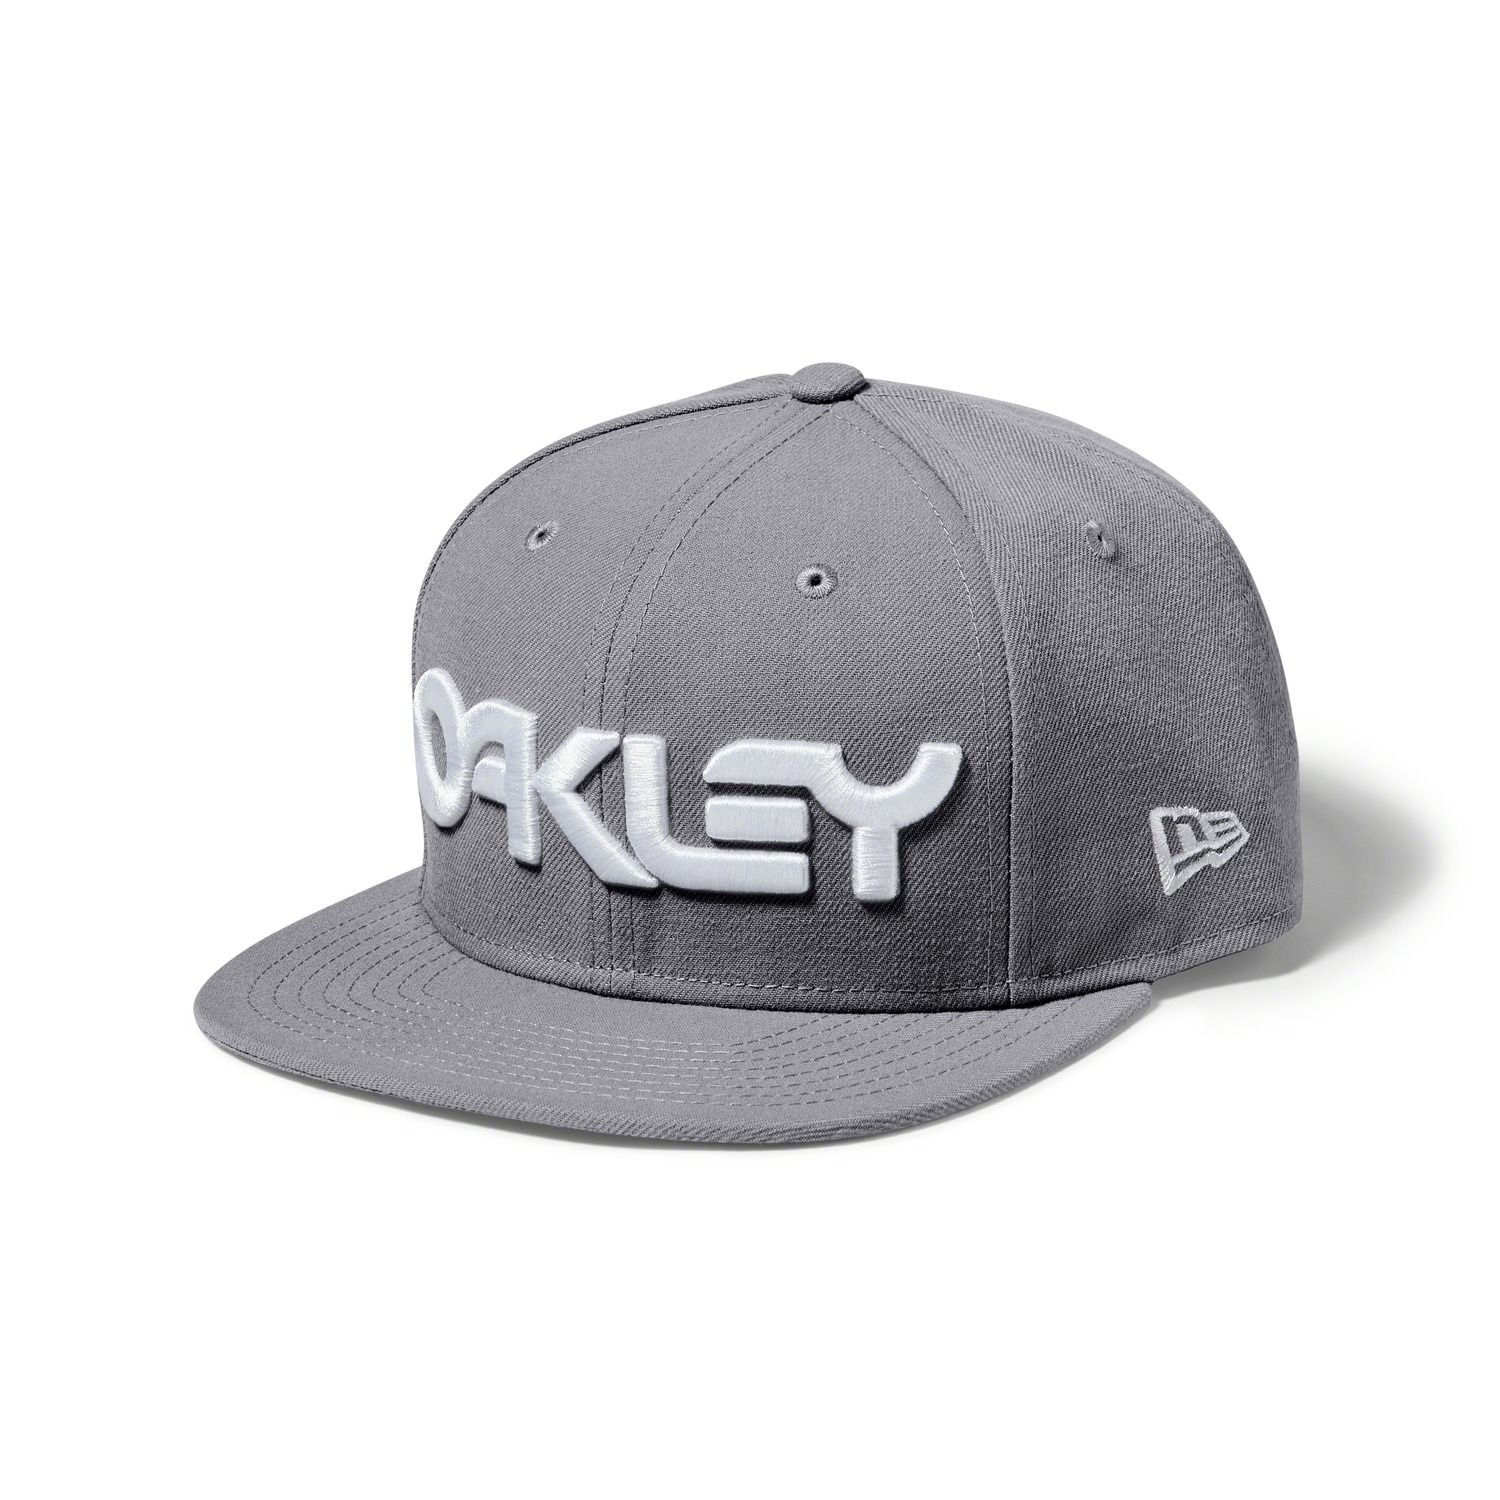 Kšiltovka OAKLEY Mark II Novelty New Era Snap Back, Grey